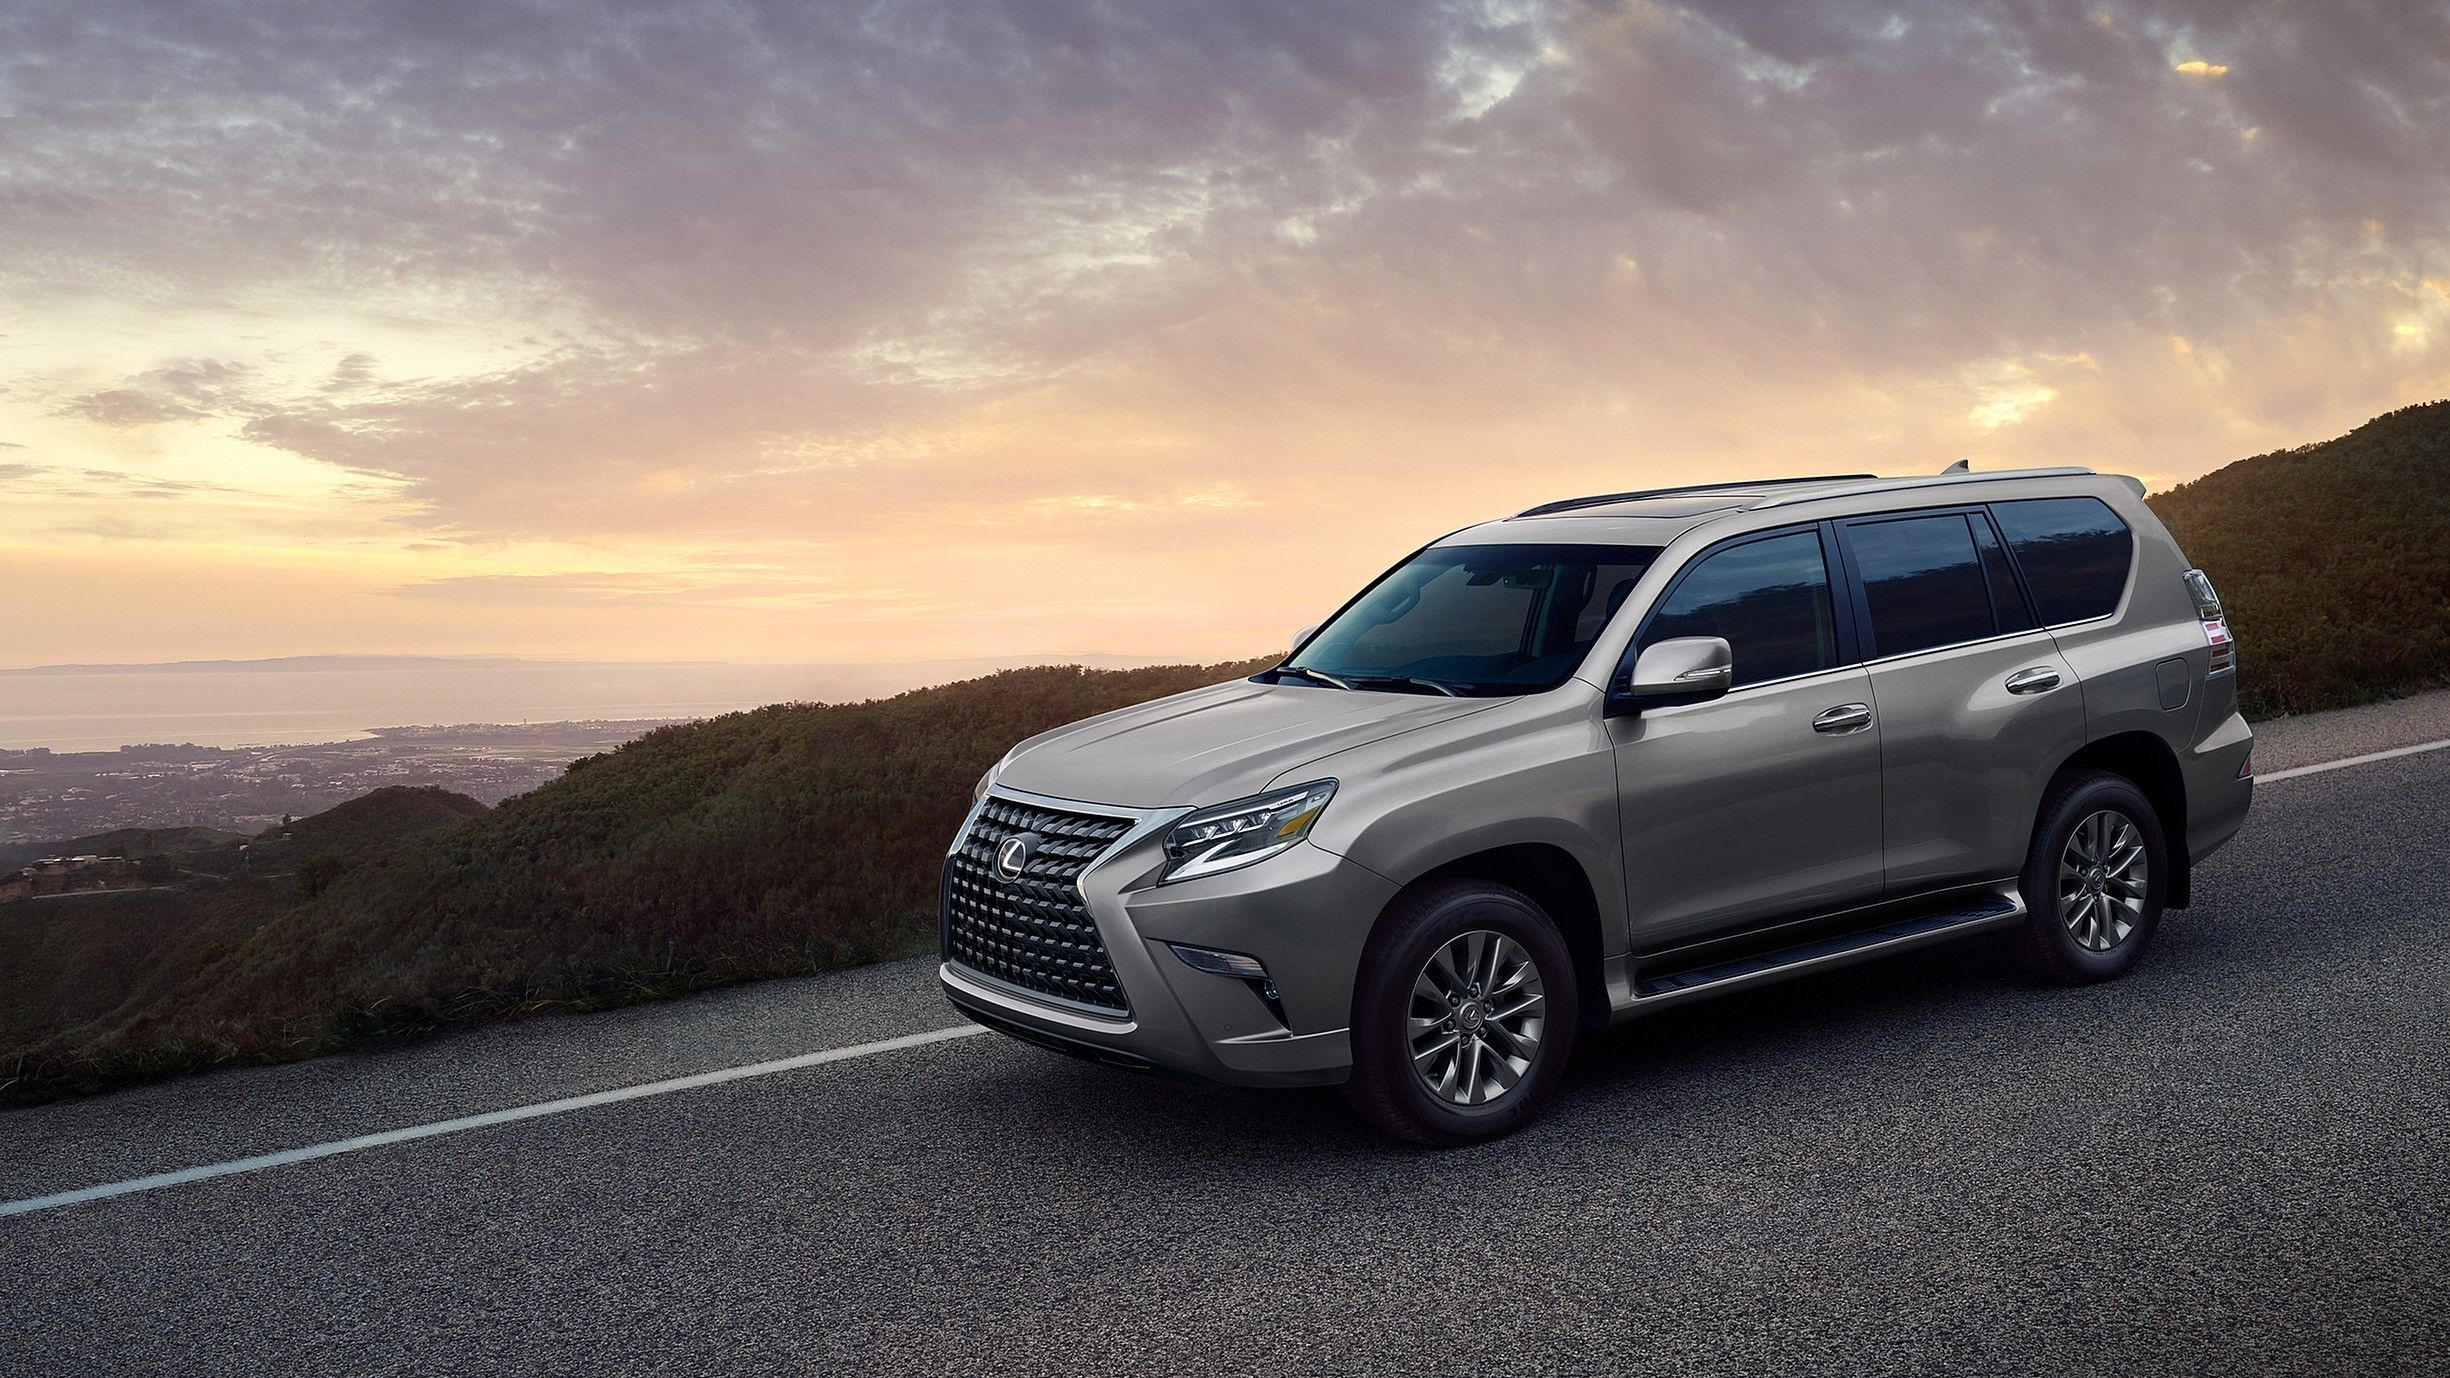 2021 lexus gx 460 review  pricing trims offroading